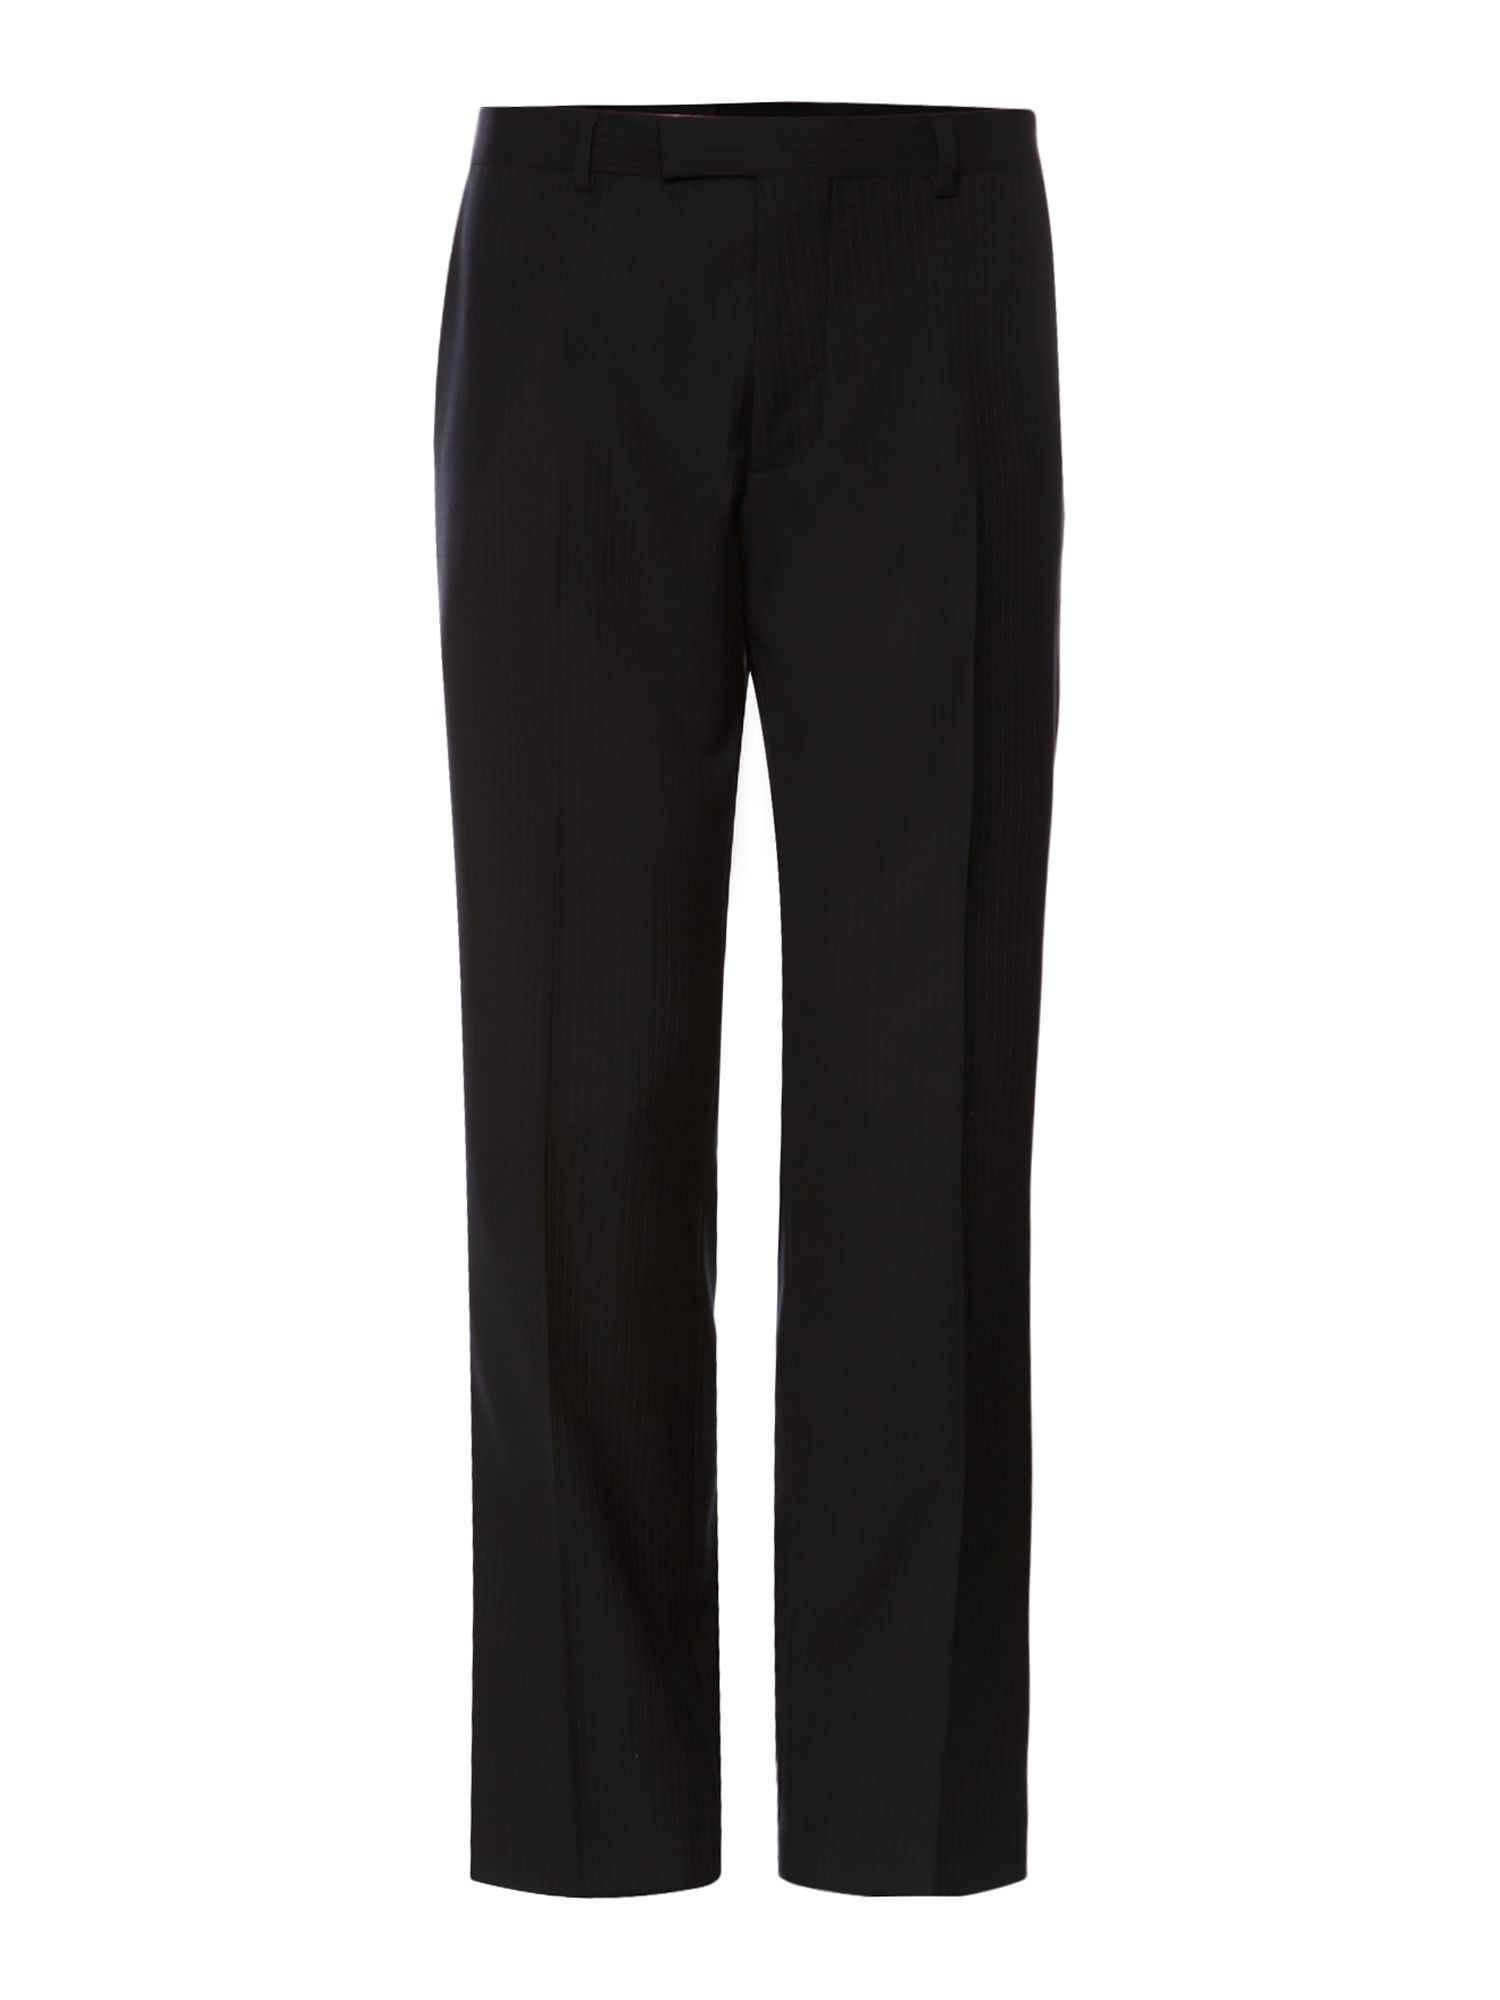 Prospect Textured Fine Stripe Suit Trouser